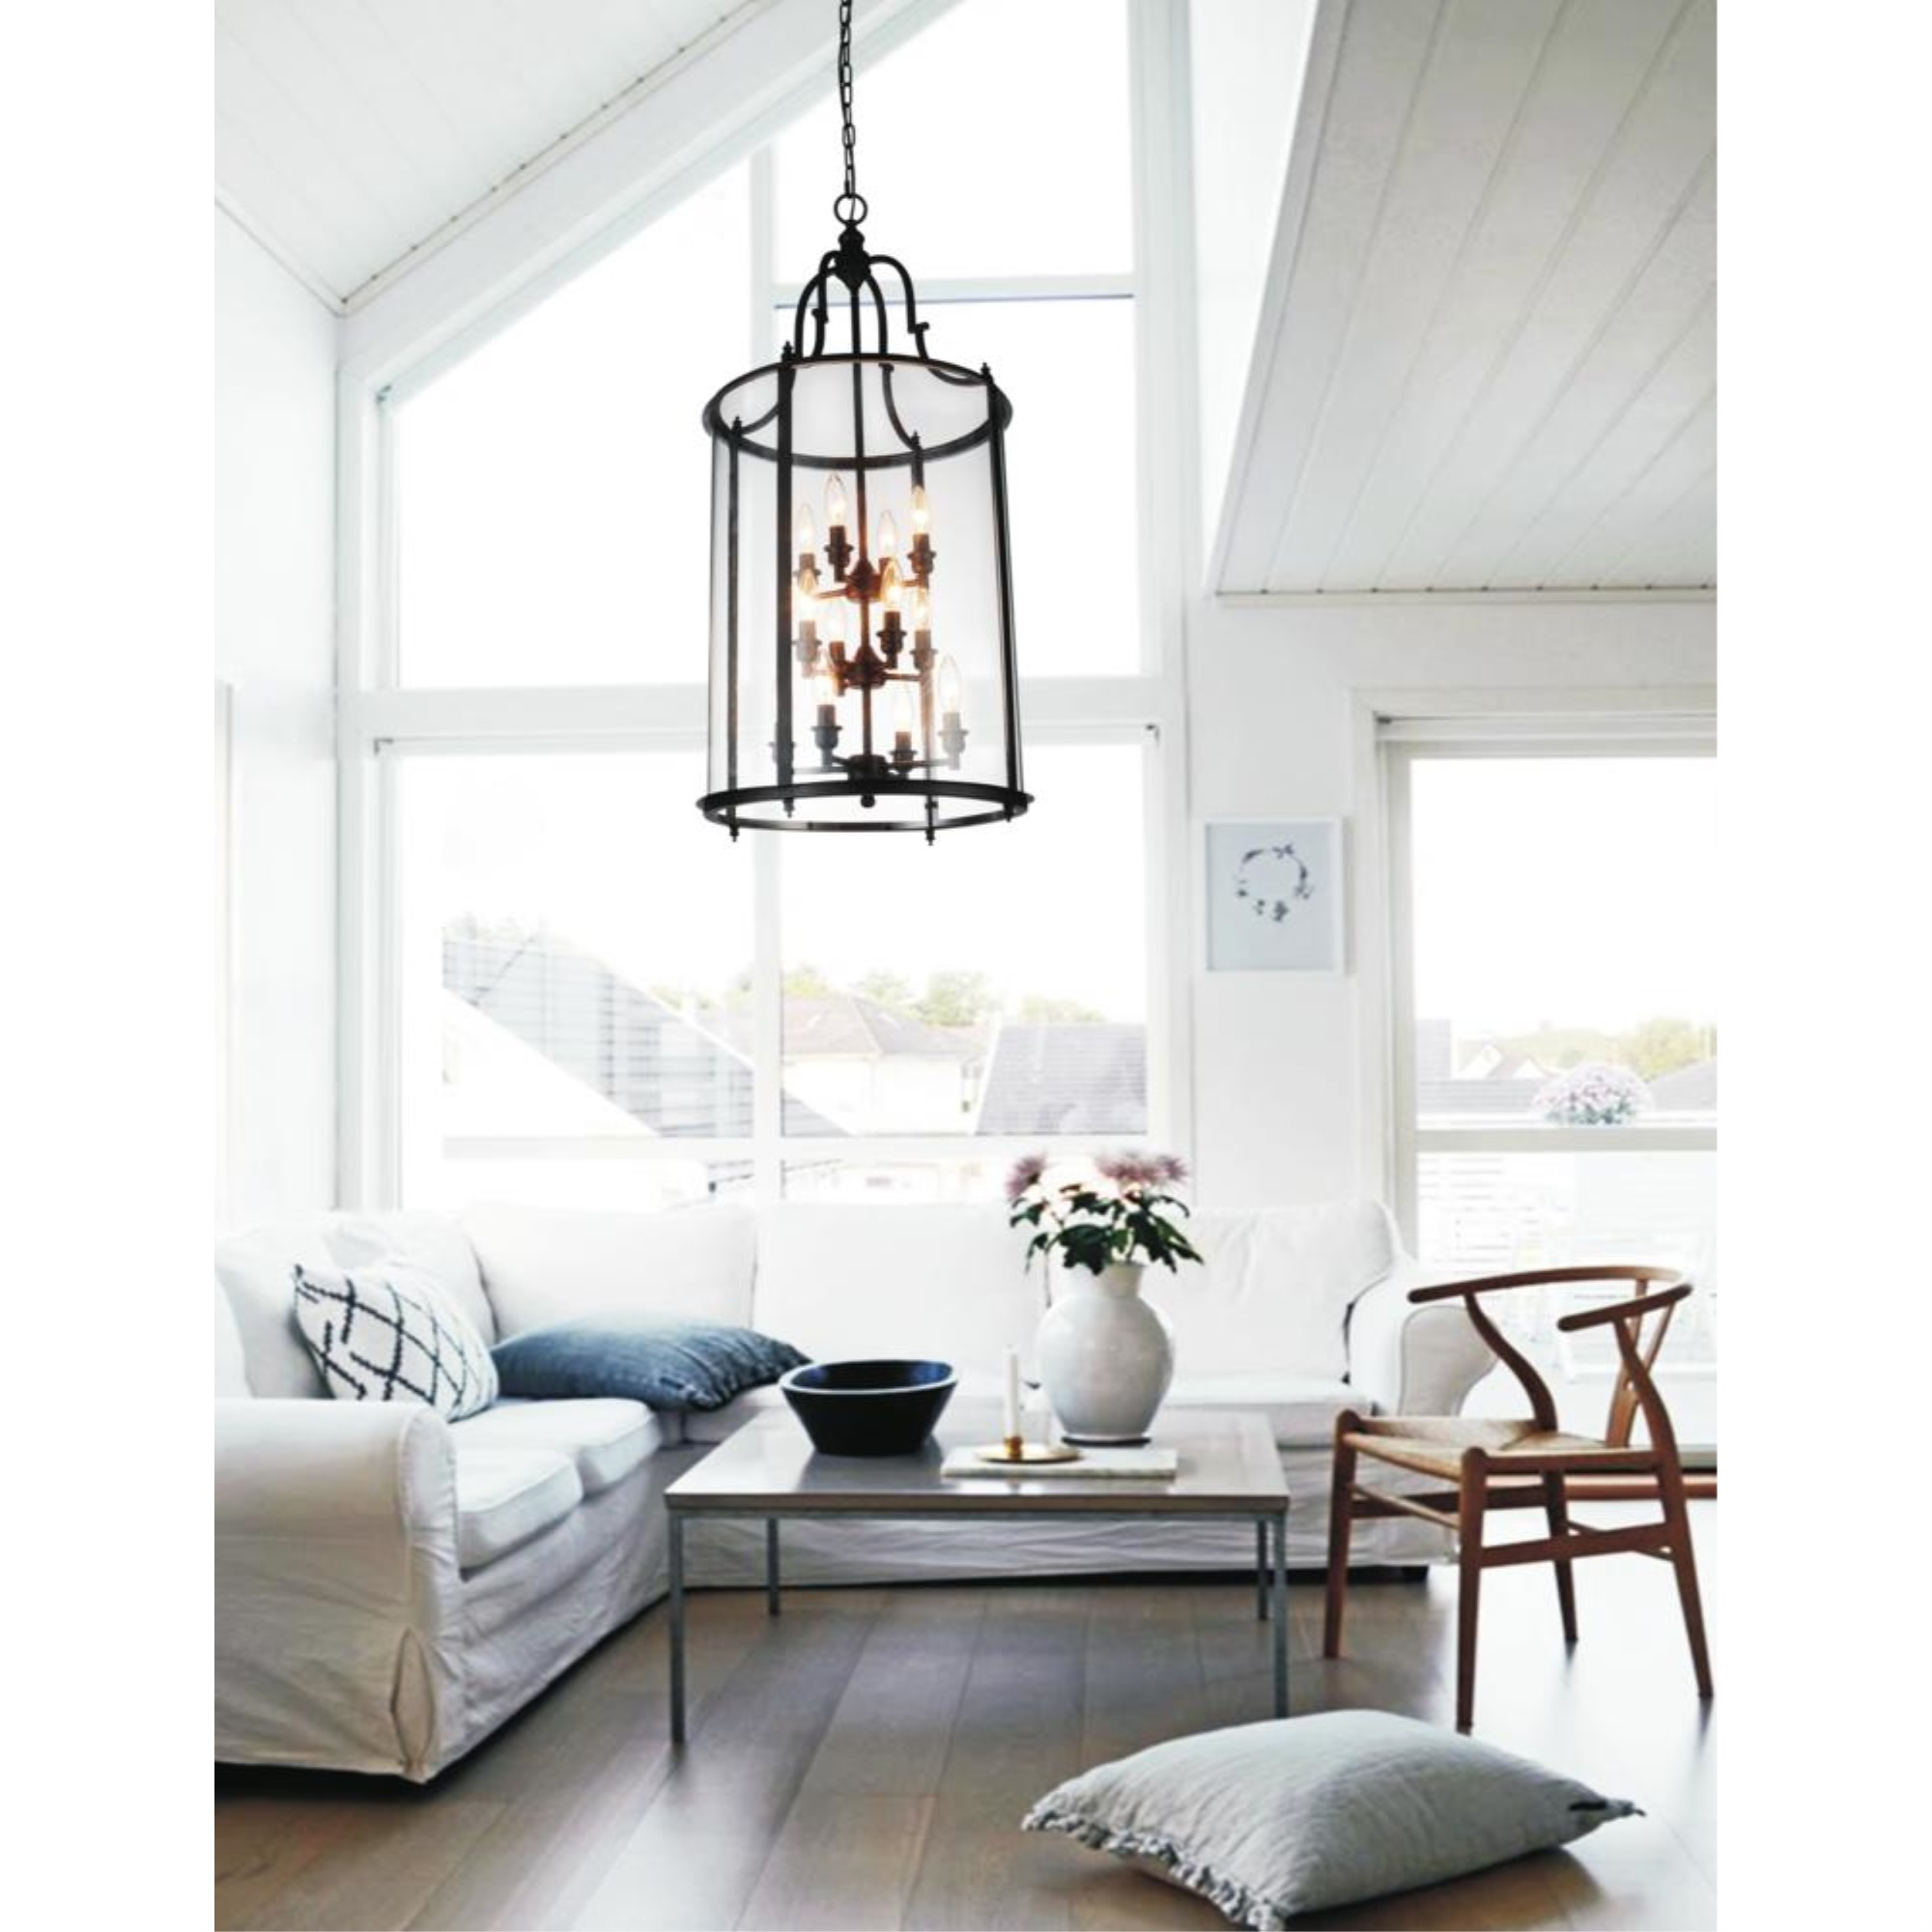 Image of: 12 Light Drum Shade Chandelier With Oil Rubbed Bronze Finish Walmart Canada